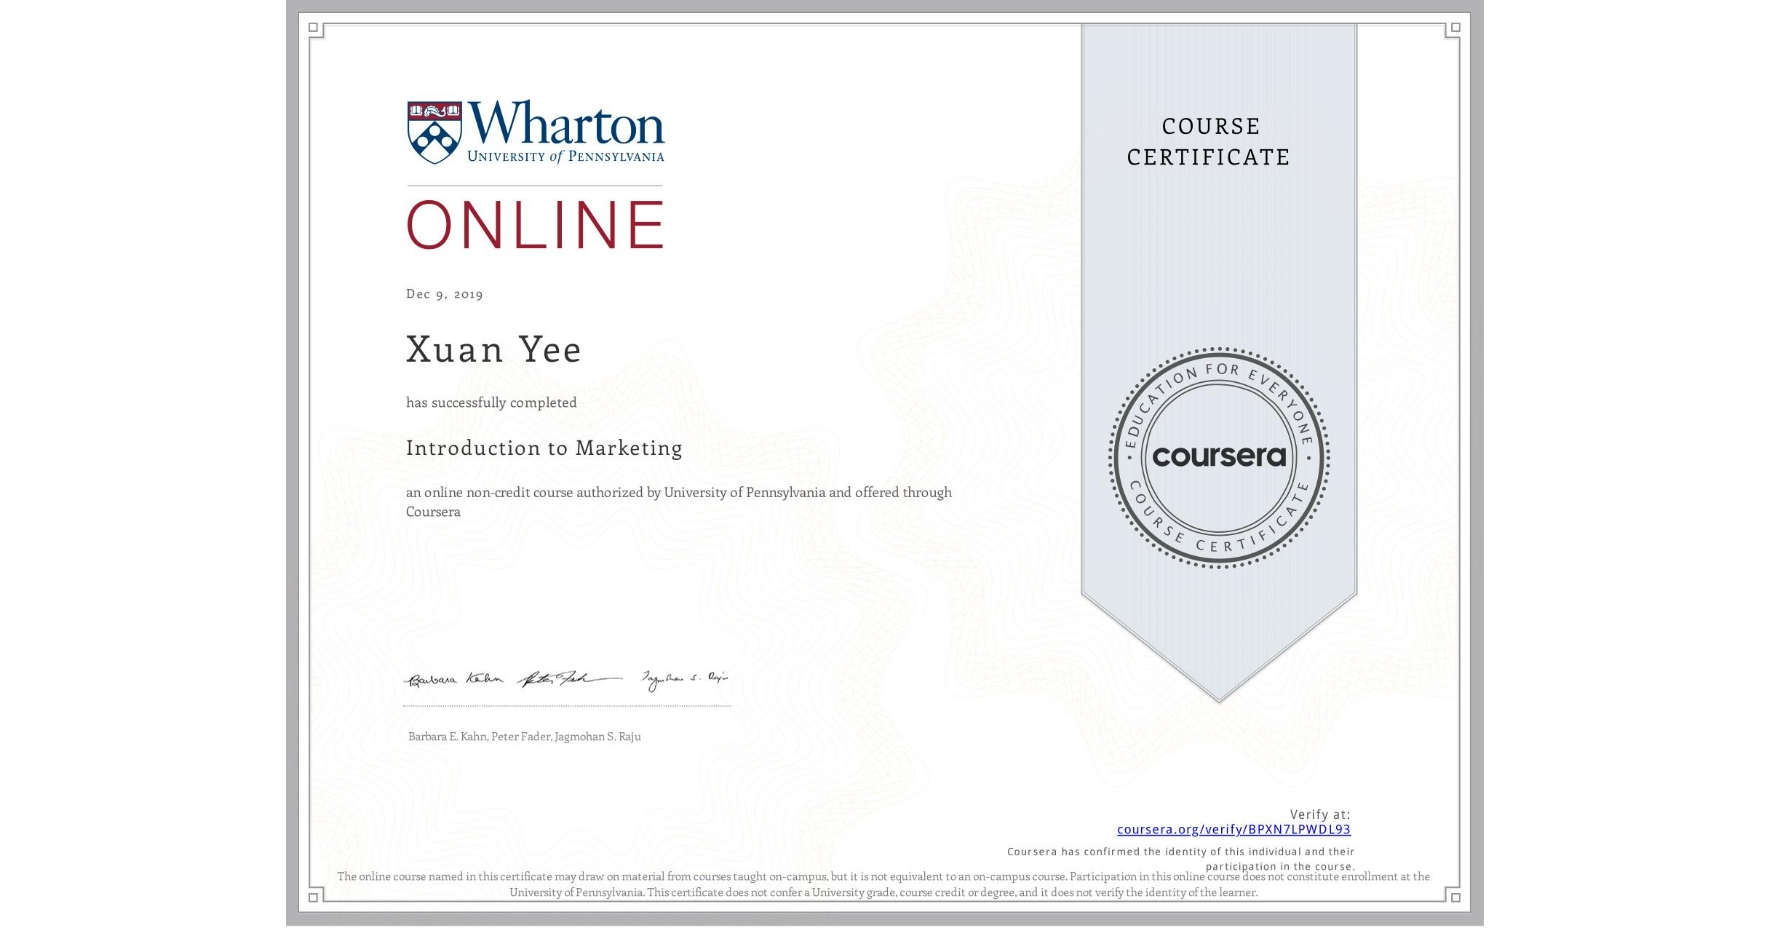 View certificate for Xuan Yee, Introduction to Marketing, an online non-credit course authorized by University of Pennsylvania and offered through Coursera